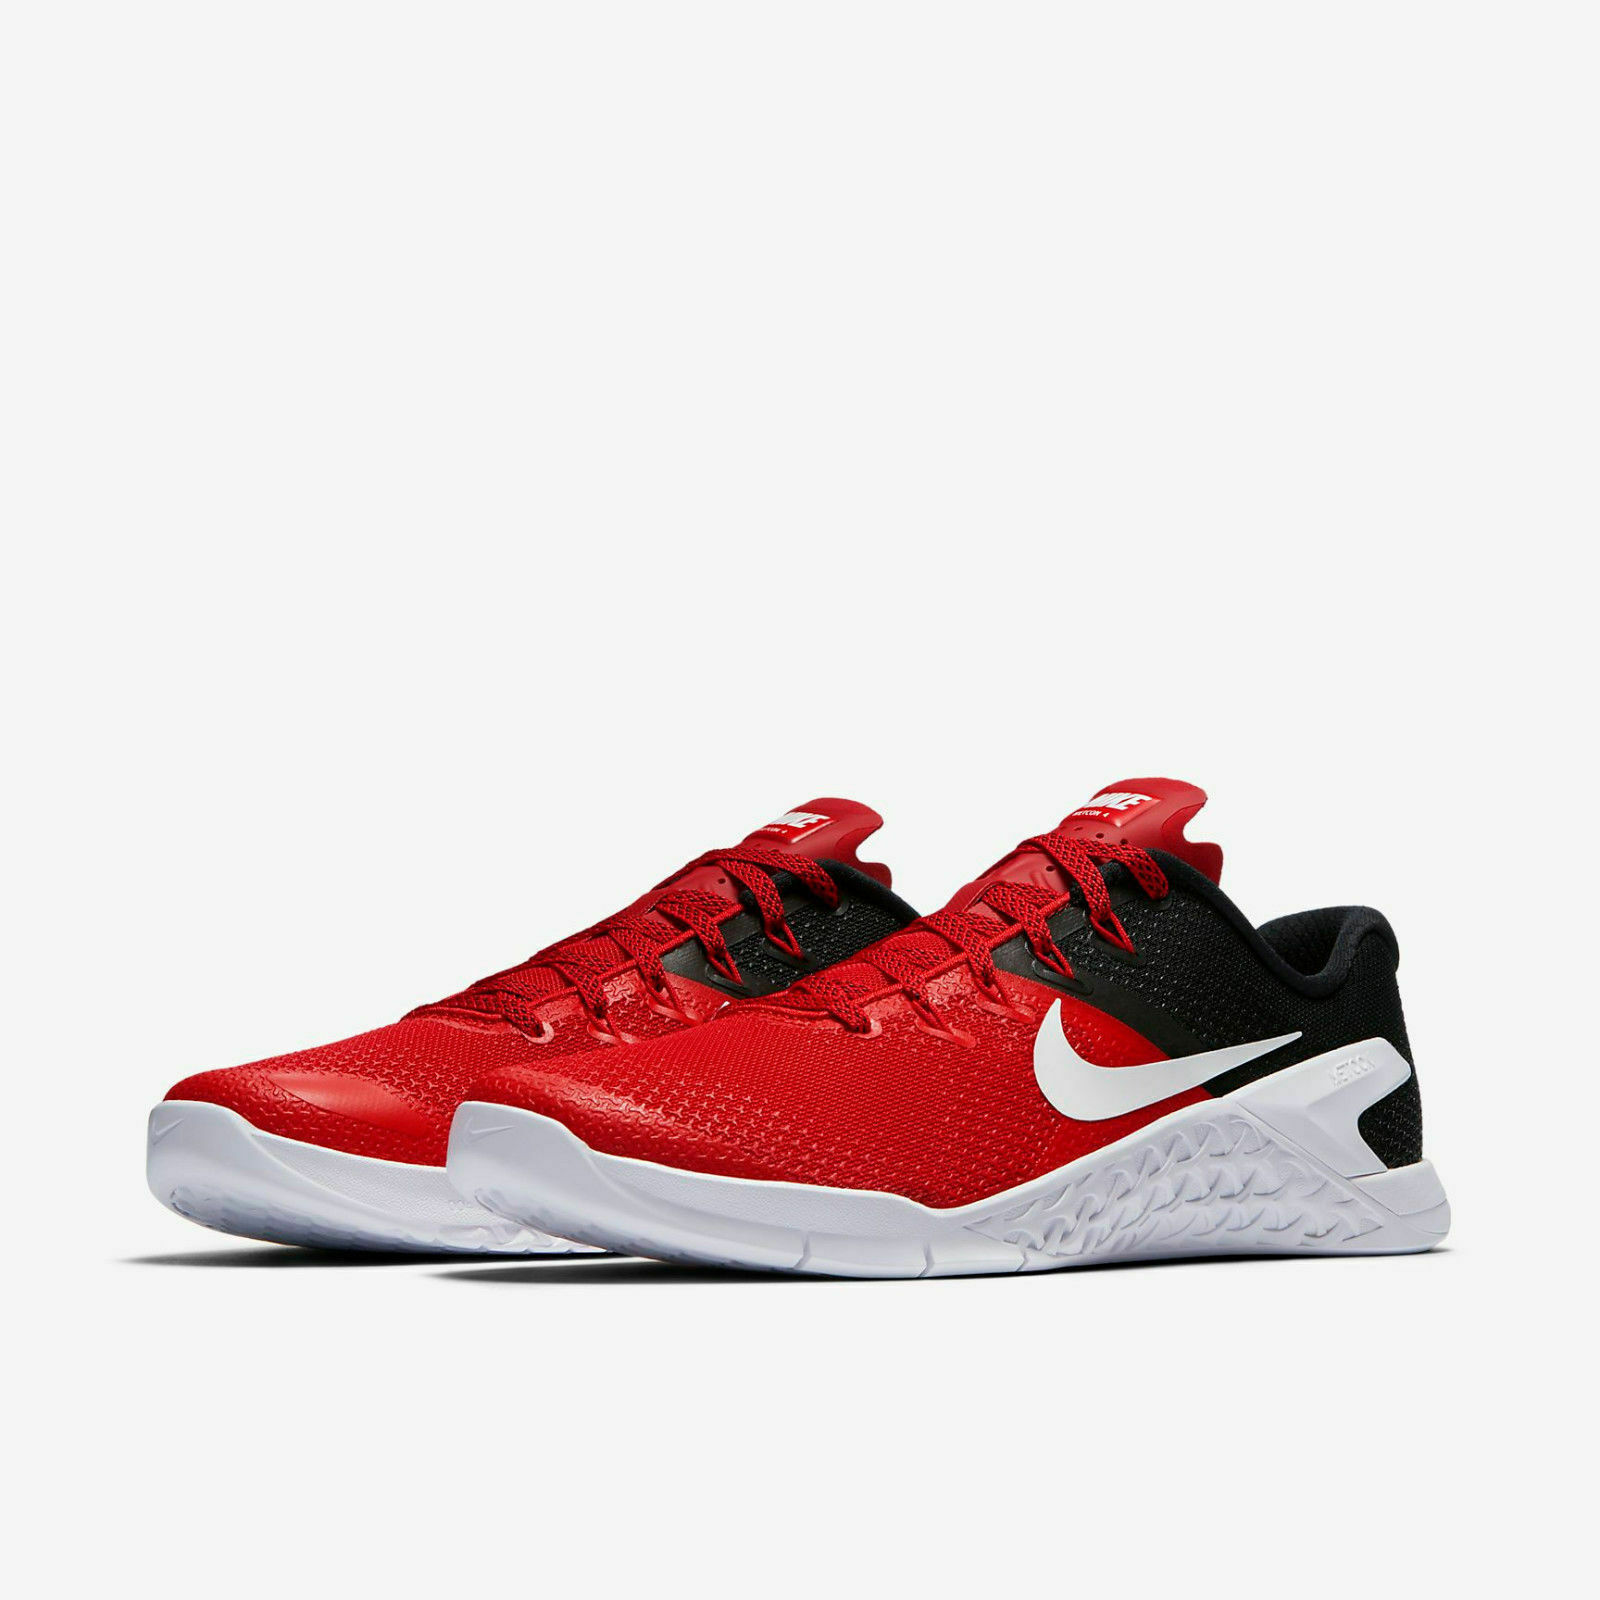 Nike Metcon 4 Red Black AH7453-600 Cross Training shoes Men's Multi Size NEW